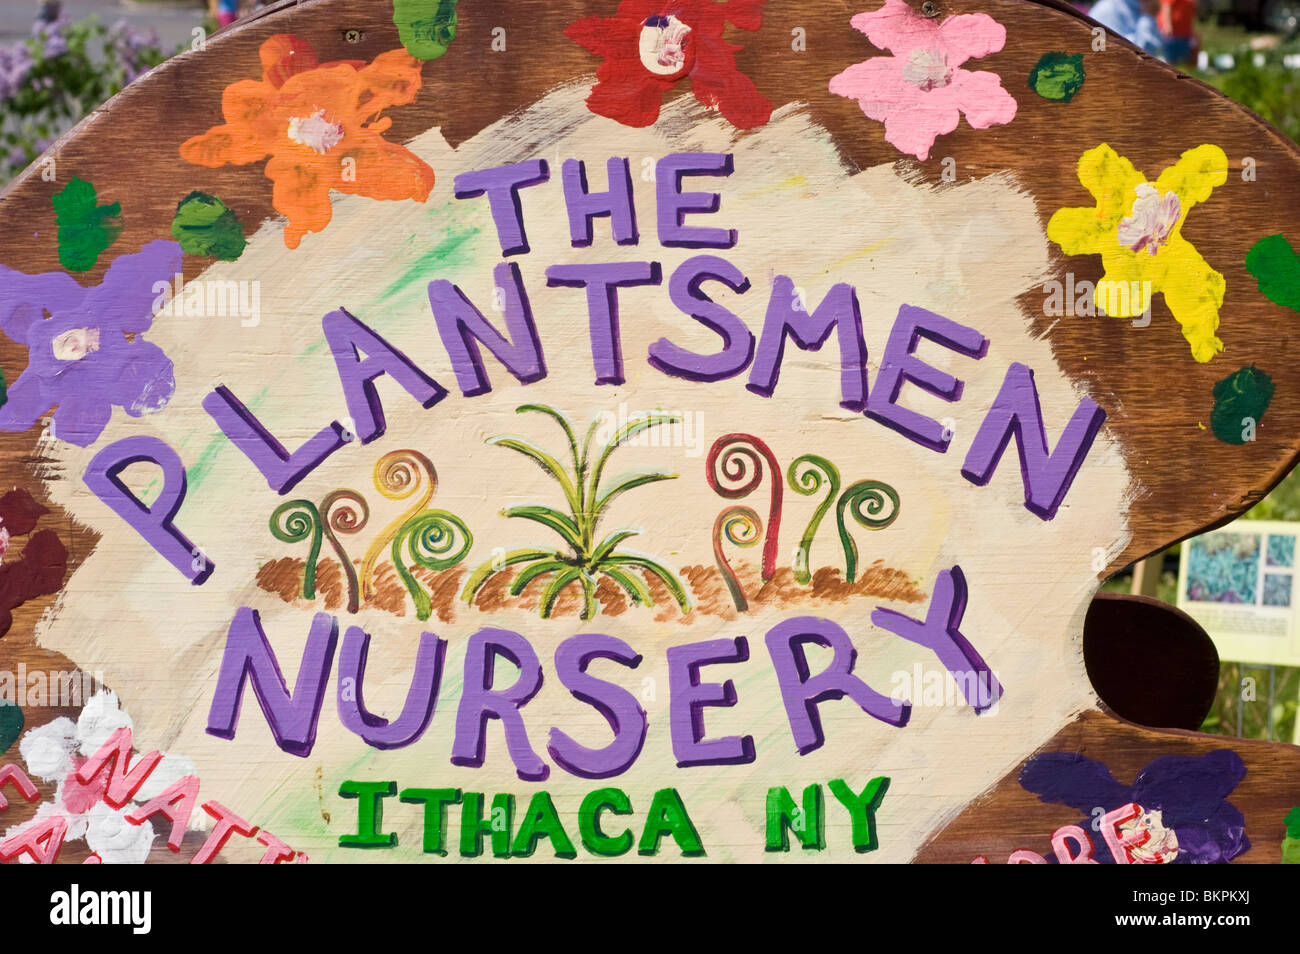 The Plantsmen Nursery, Ithaca, NY colorful plate with painted flowers - Stock Image